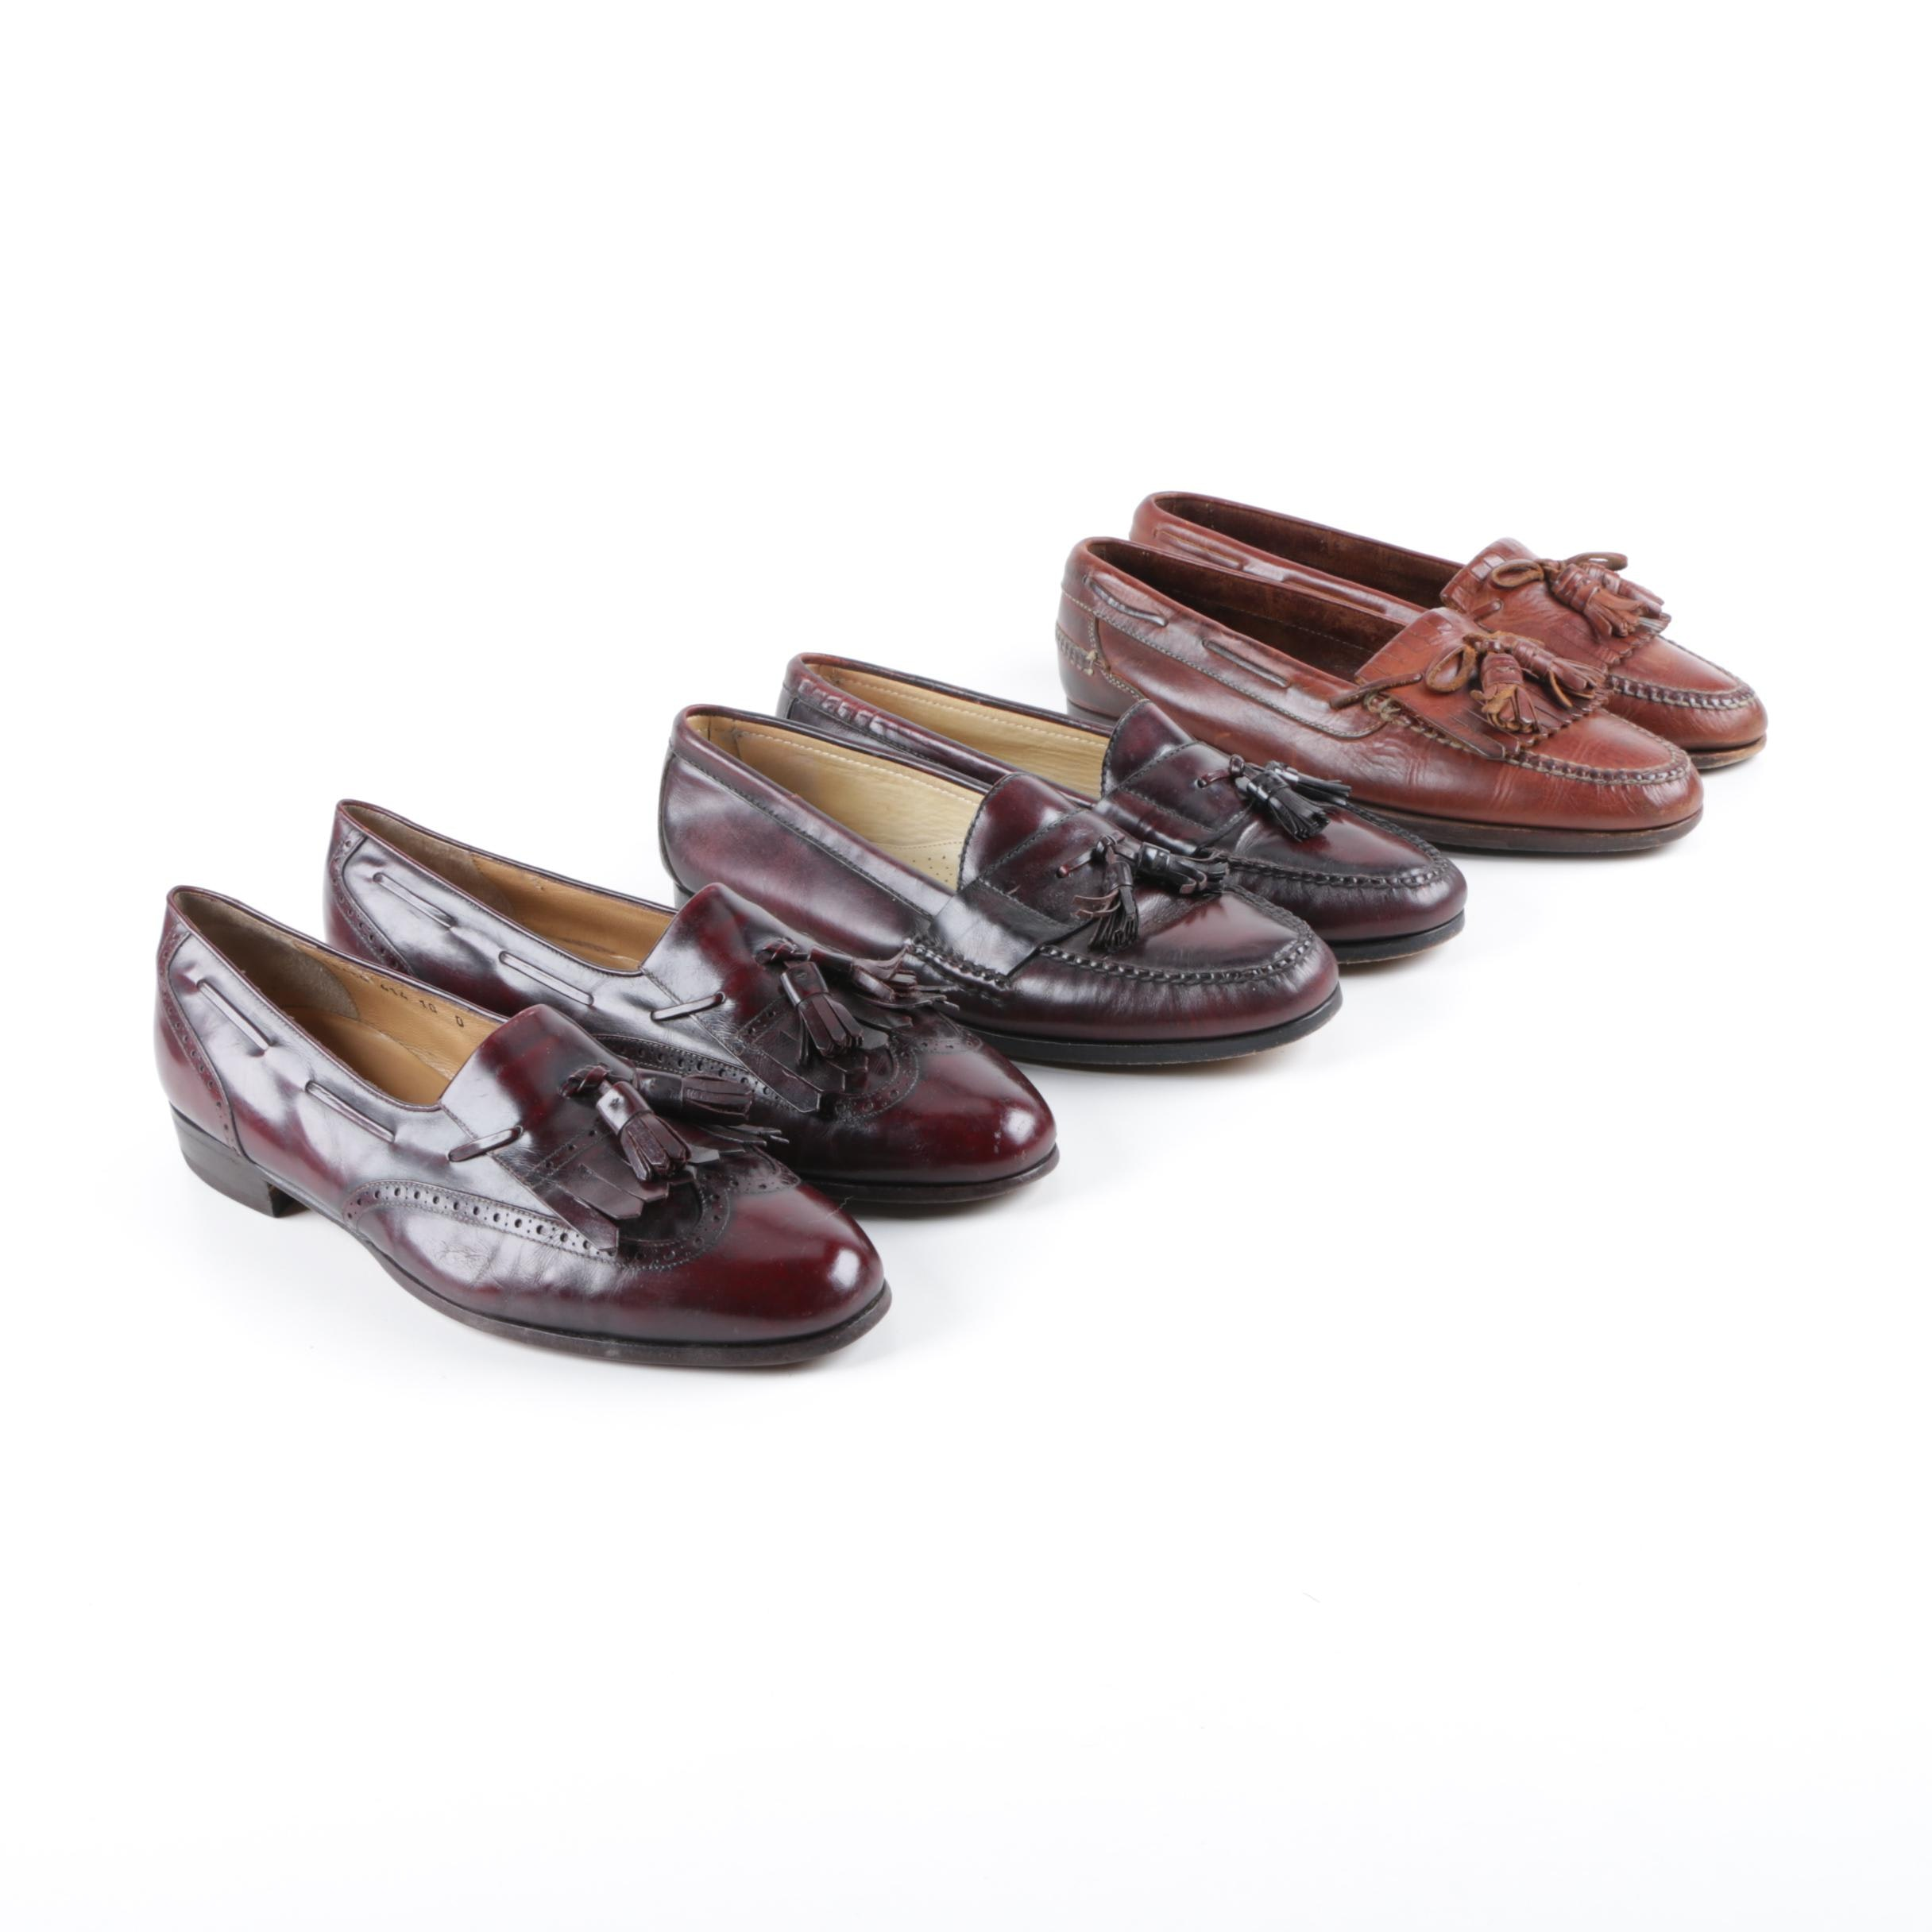 Men's Cole Haan and Salvatore Ferragamo Leather Loafers